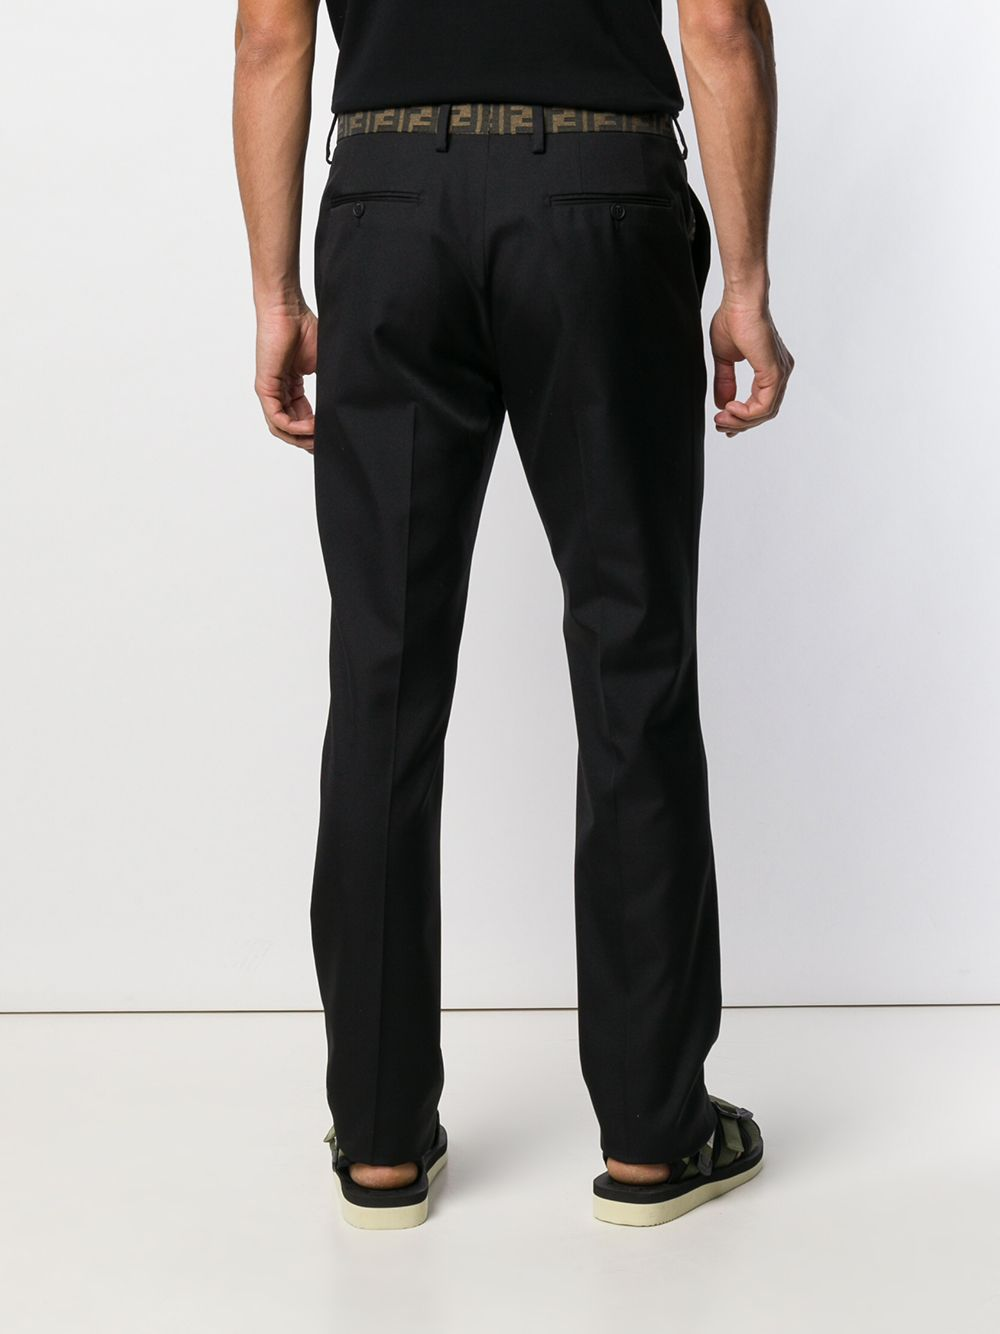 black cotton-blend Fendi logo trim trousers  FENDI |  | FB0366-A74QF0QA1